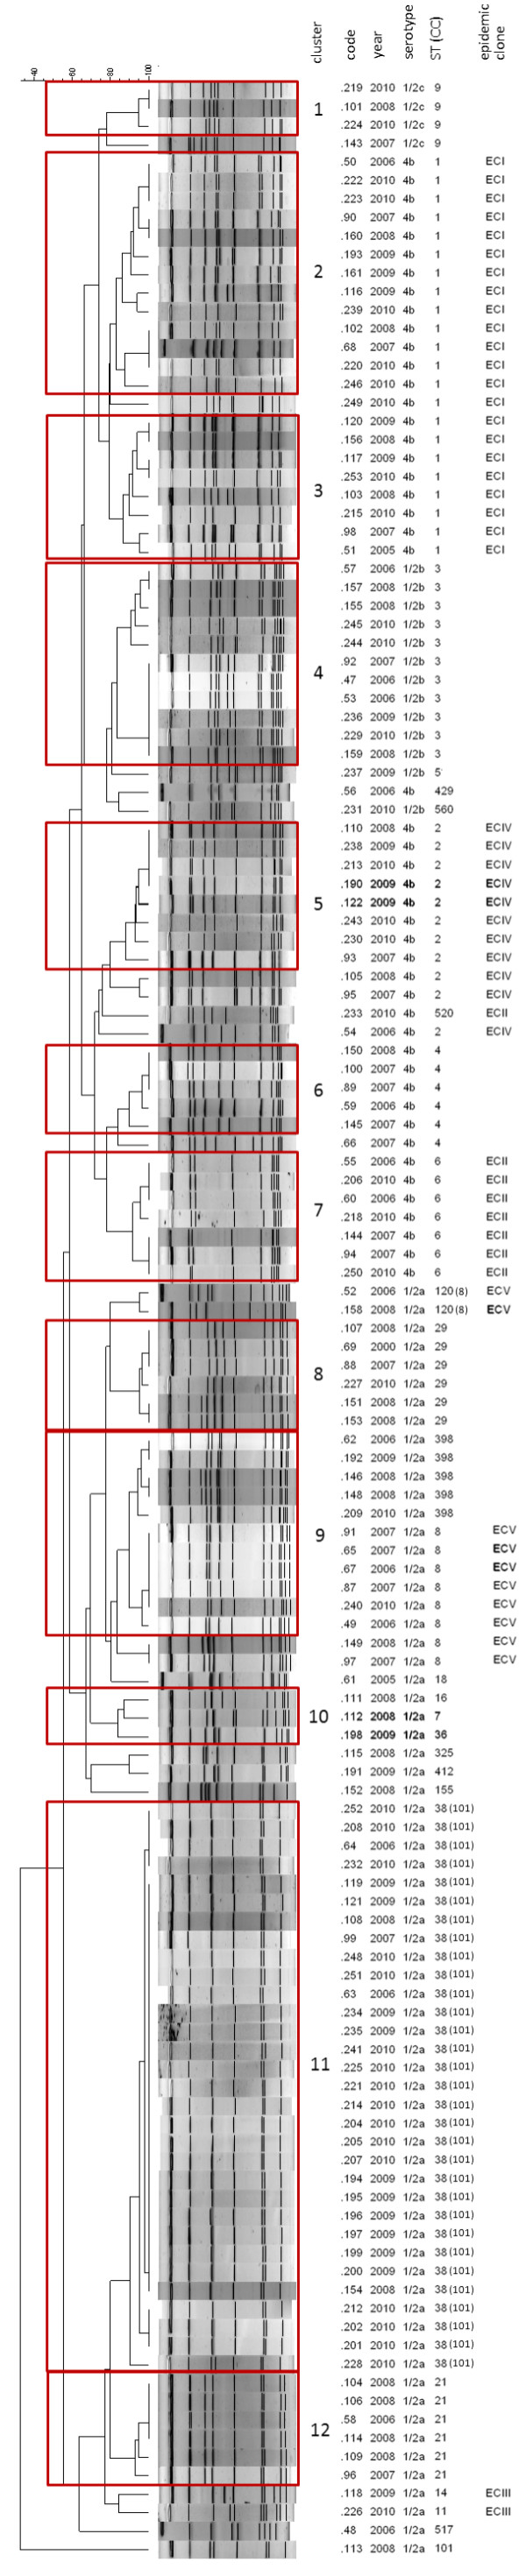 http://static-content.springer.com/image/art%3A10.1186%2F1471-2334-13-152/MediaObjects/12879_2012_2355_Fig2_HTML.jpg